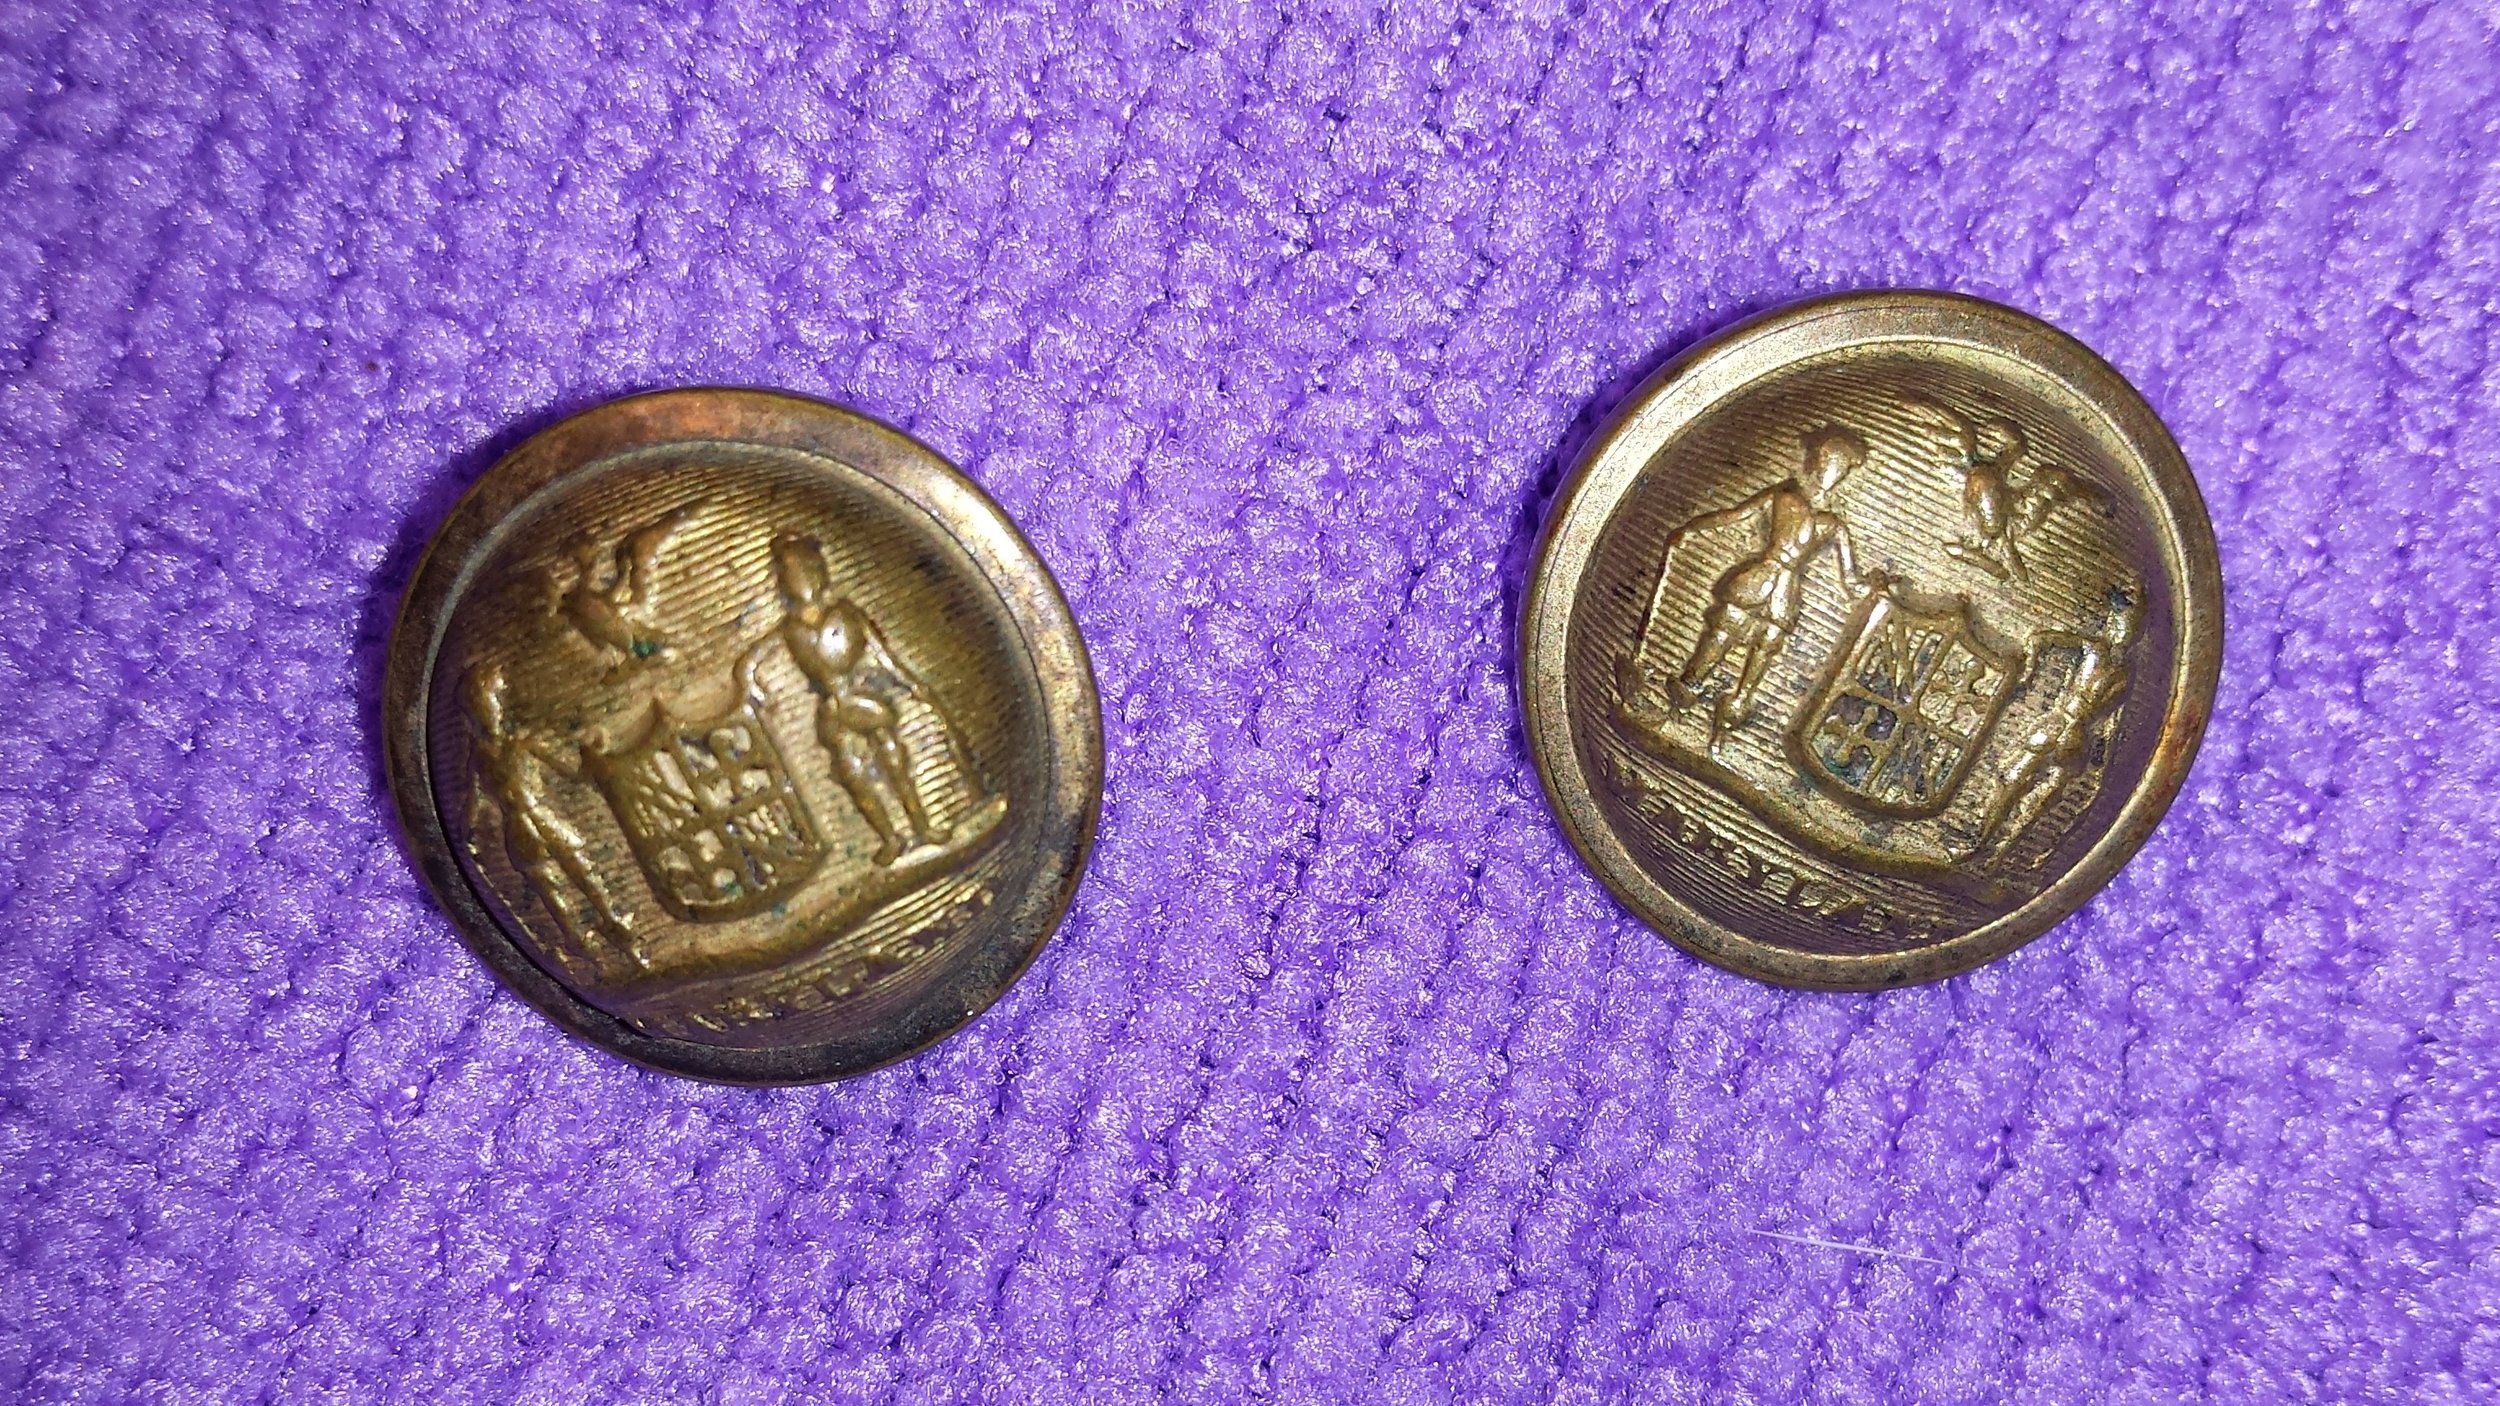 2 Maryland State Seal Civil War Buttons